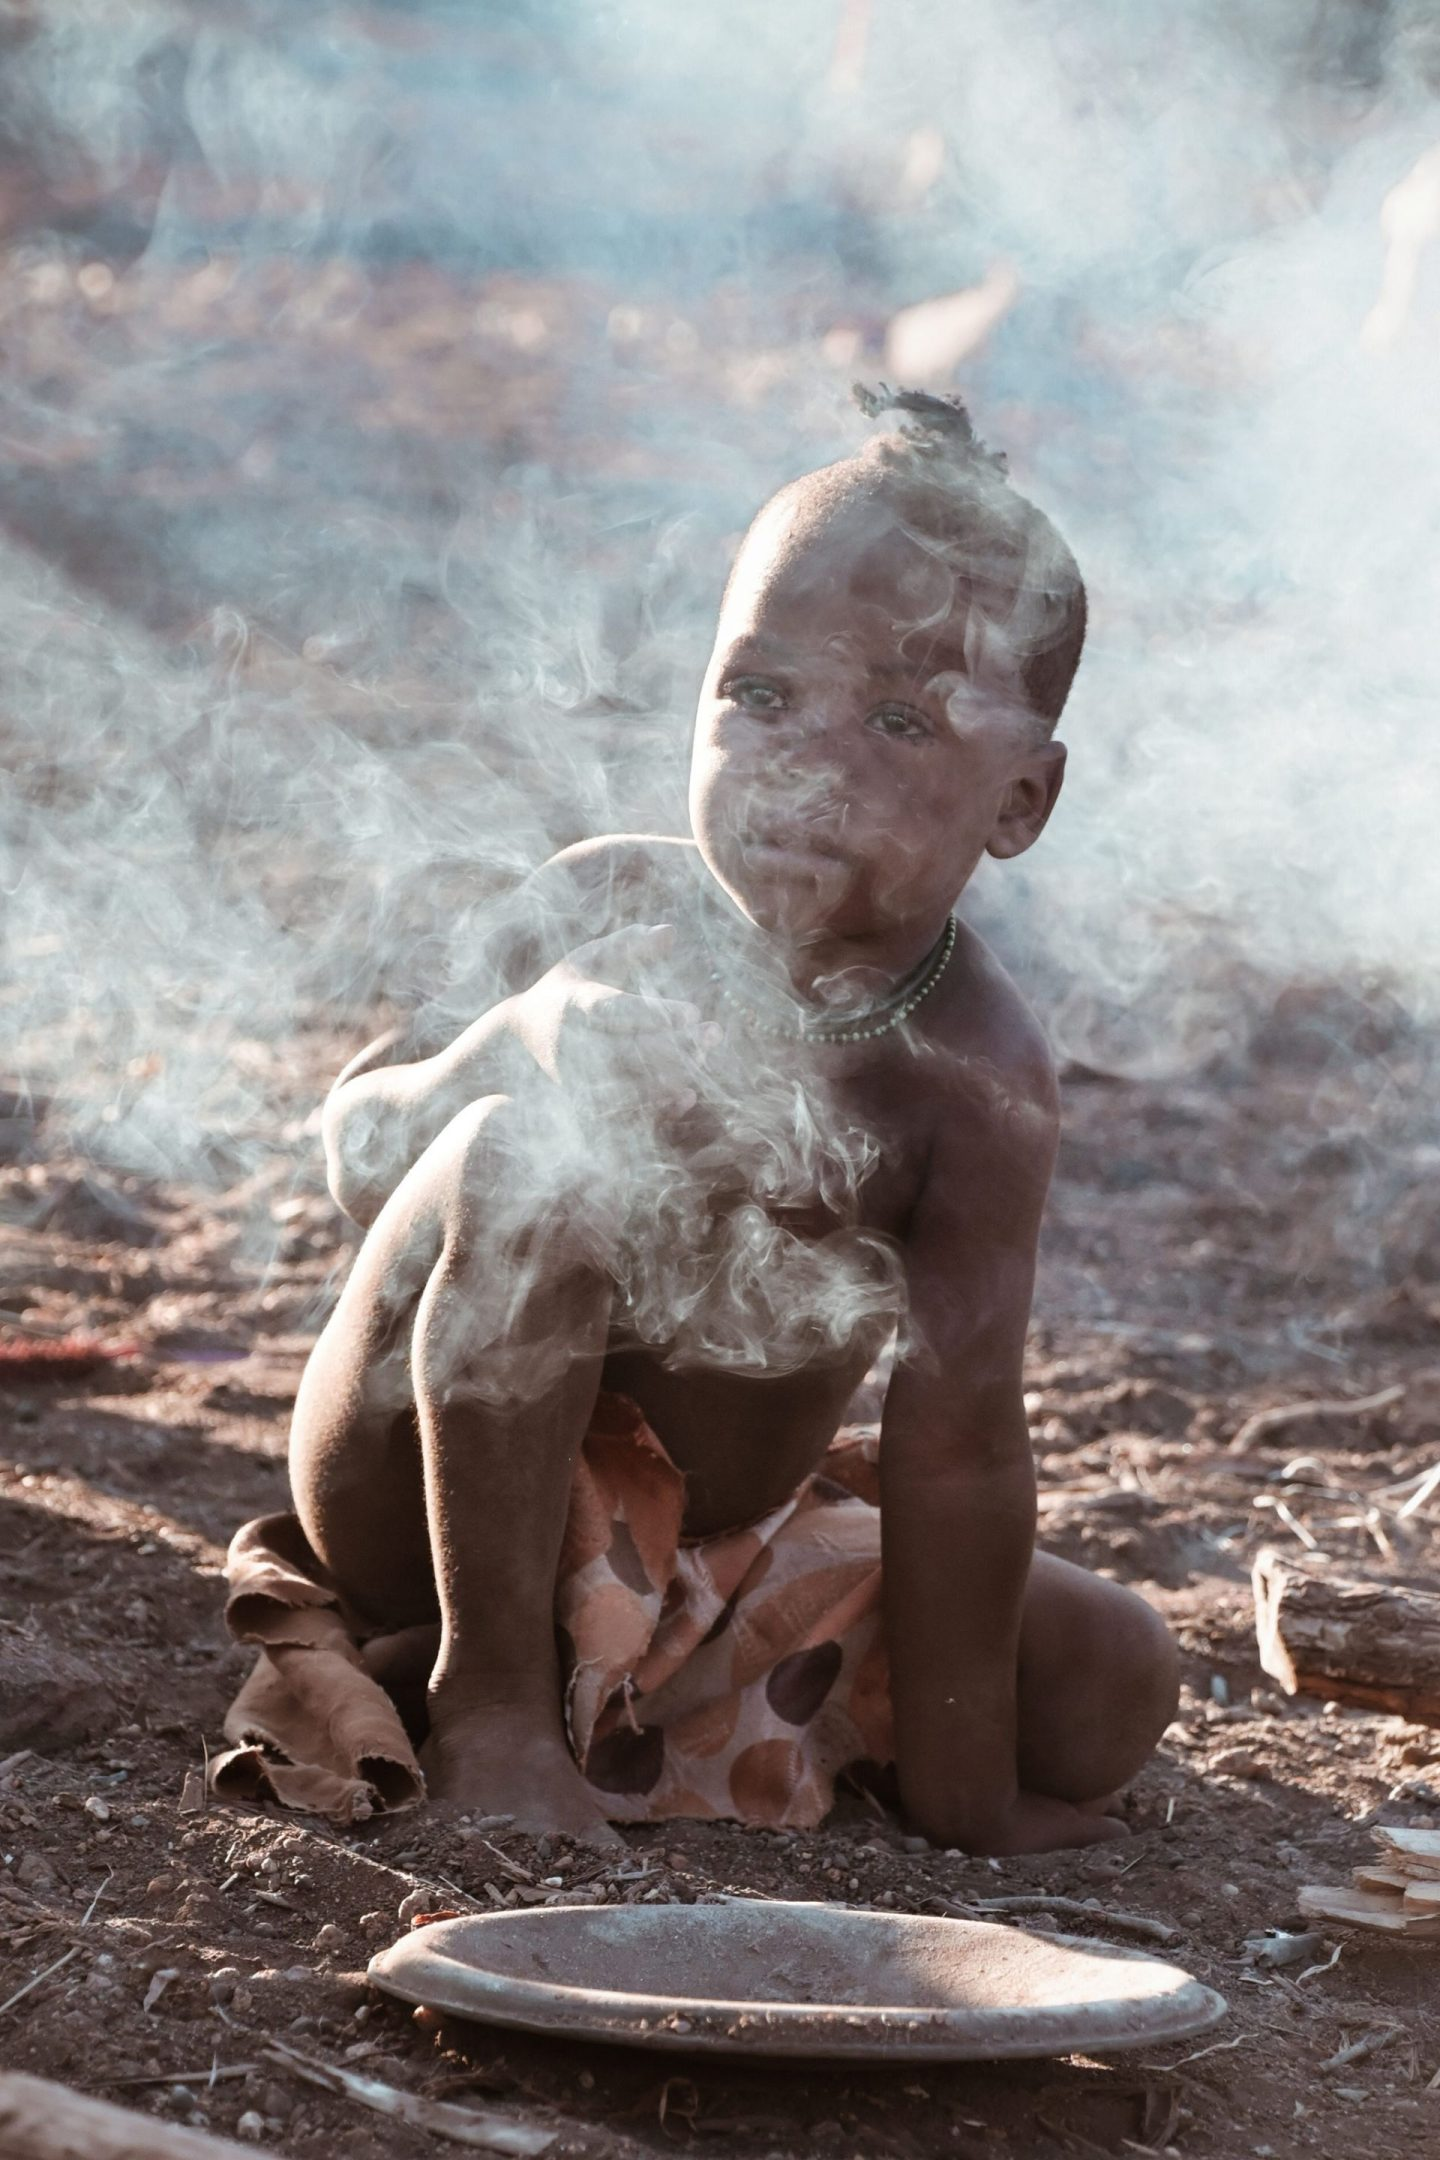 Himba child in Namibia